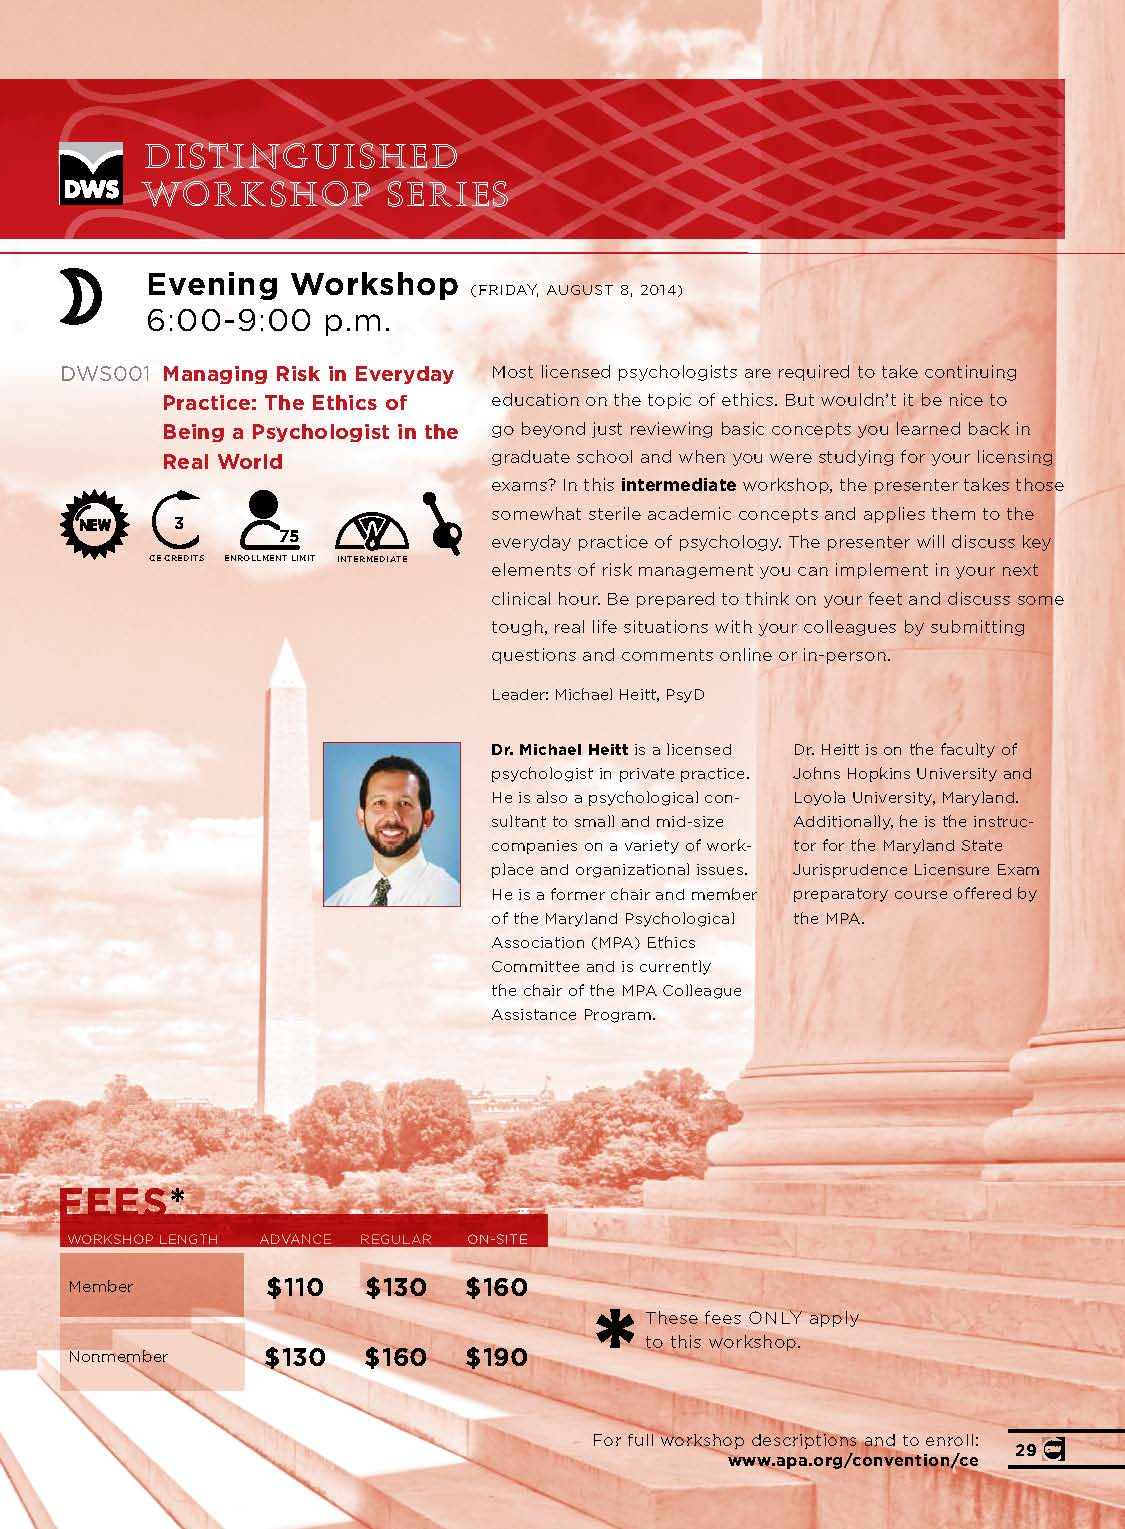 DWS Workshop Series 2014